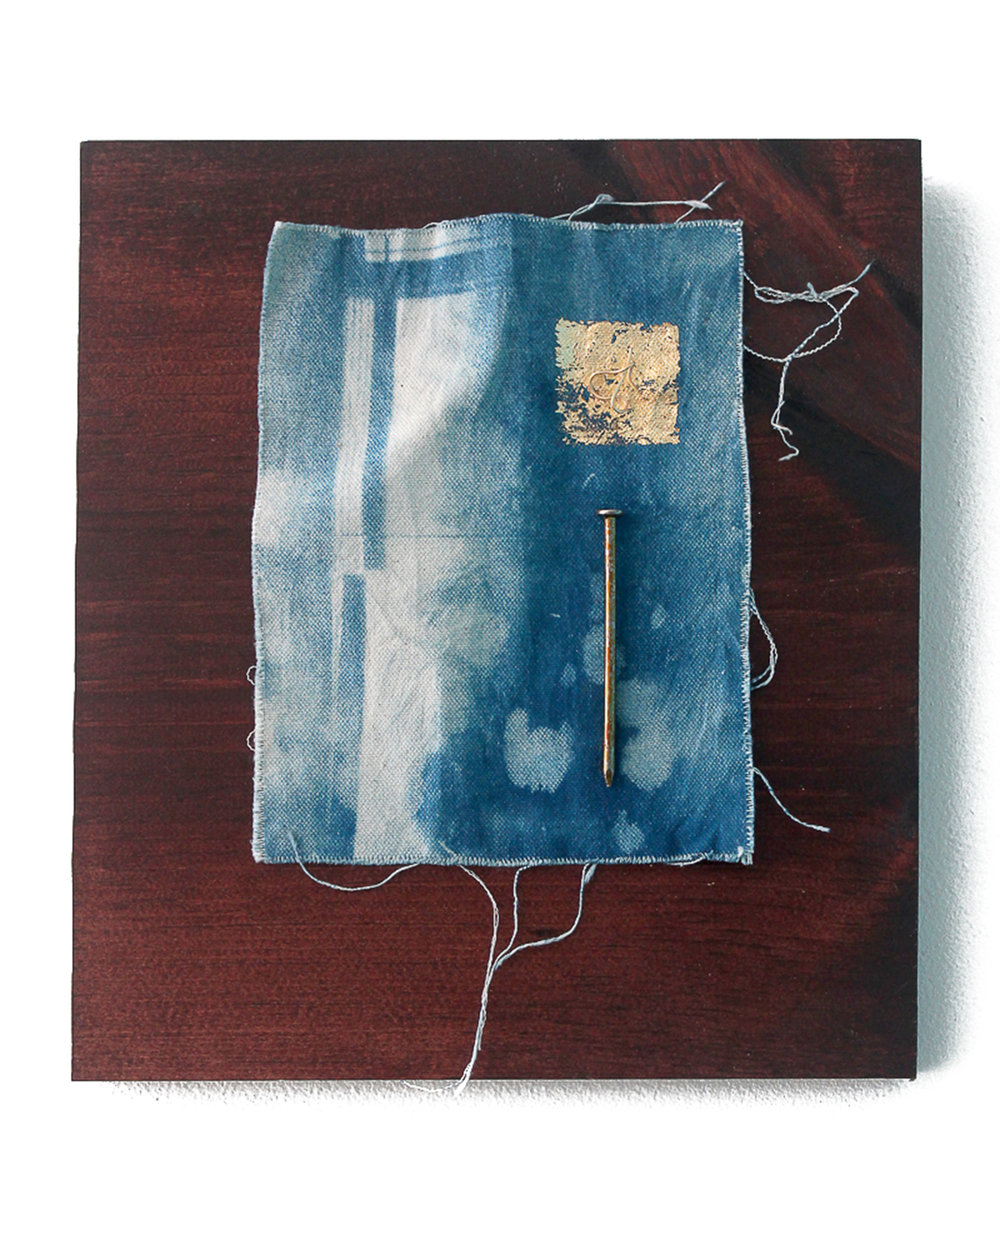 Jeremiah Morris - _A Room with a View_ - Cyanotype on cavas, gold leaf, nail, wood - 2016 - $325.jpg